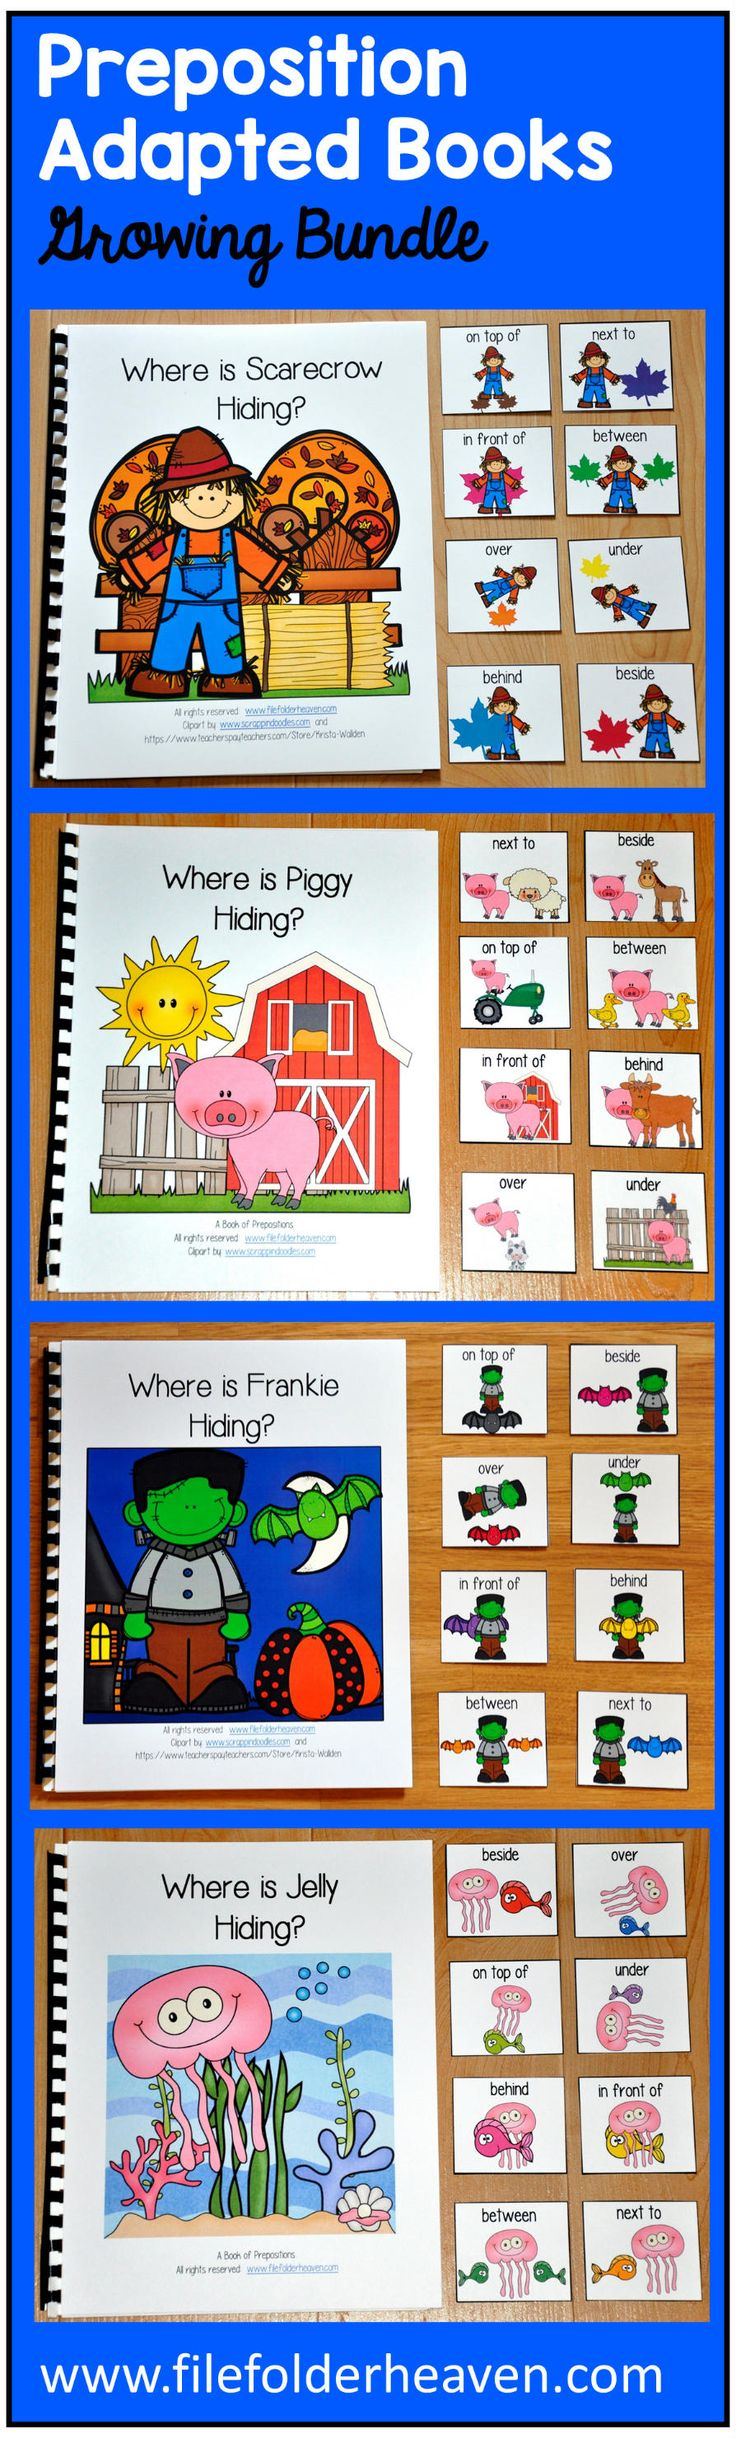 Books about color for kids - The Preposition Adapted Books Growing Bundle Is Packed Full Of Adapted Books That Teach Colors And